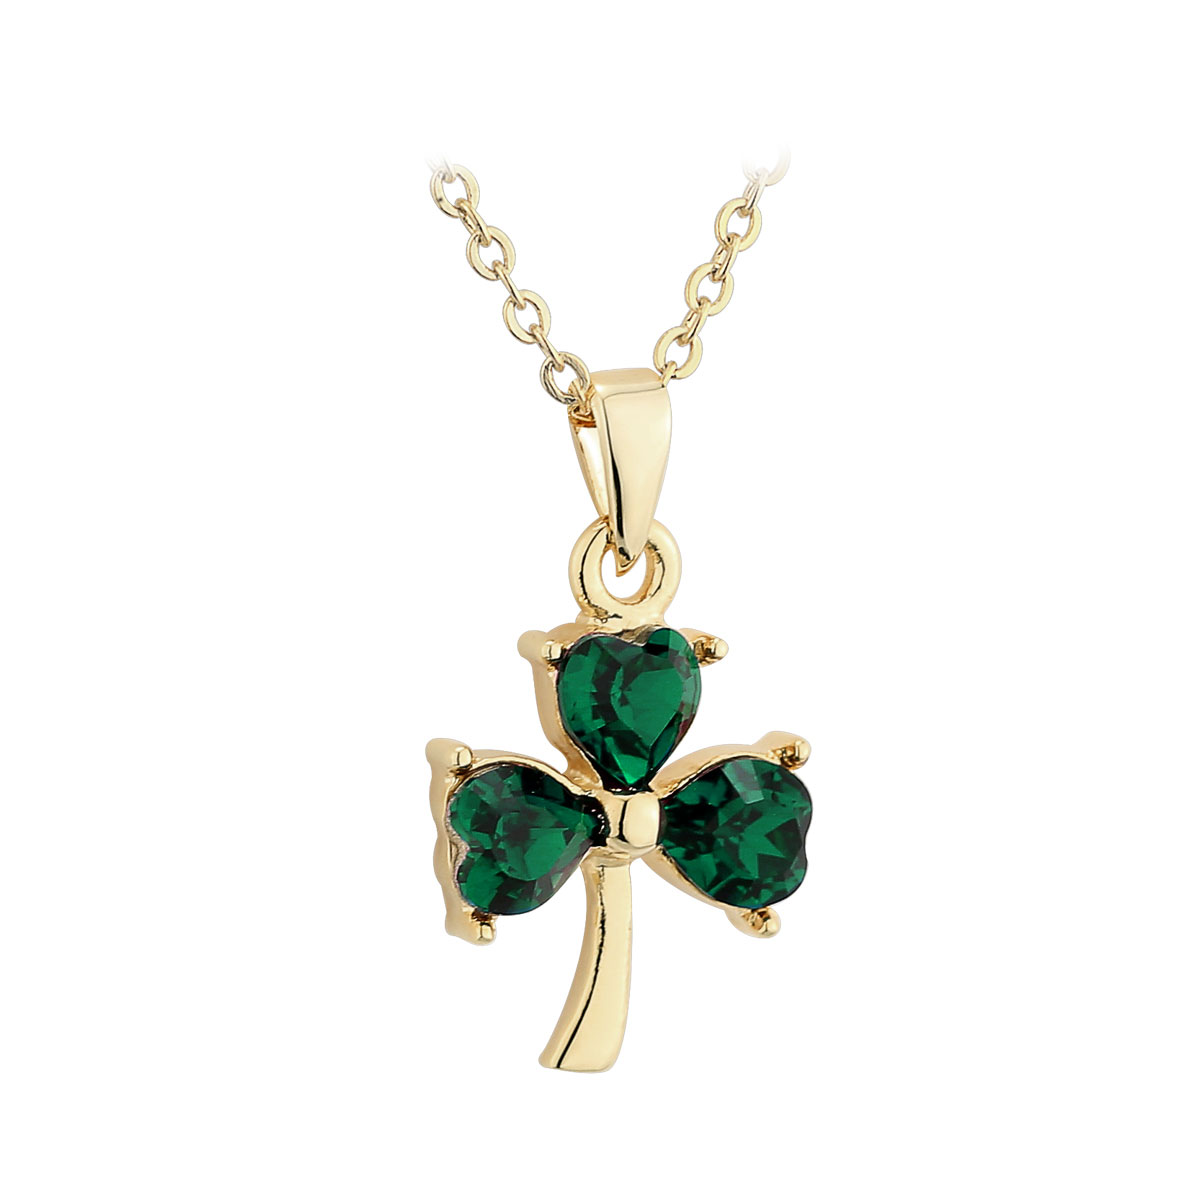 Cashs Ireland, Gold-Plated Small Shamrock and Crystal Pendant Necklace